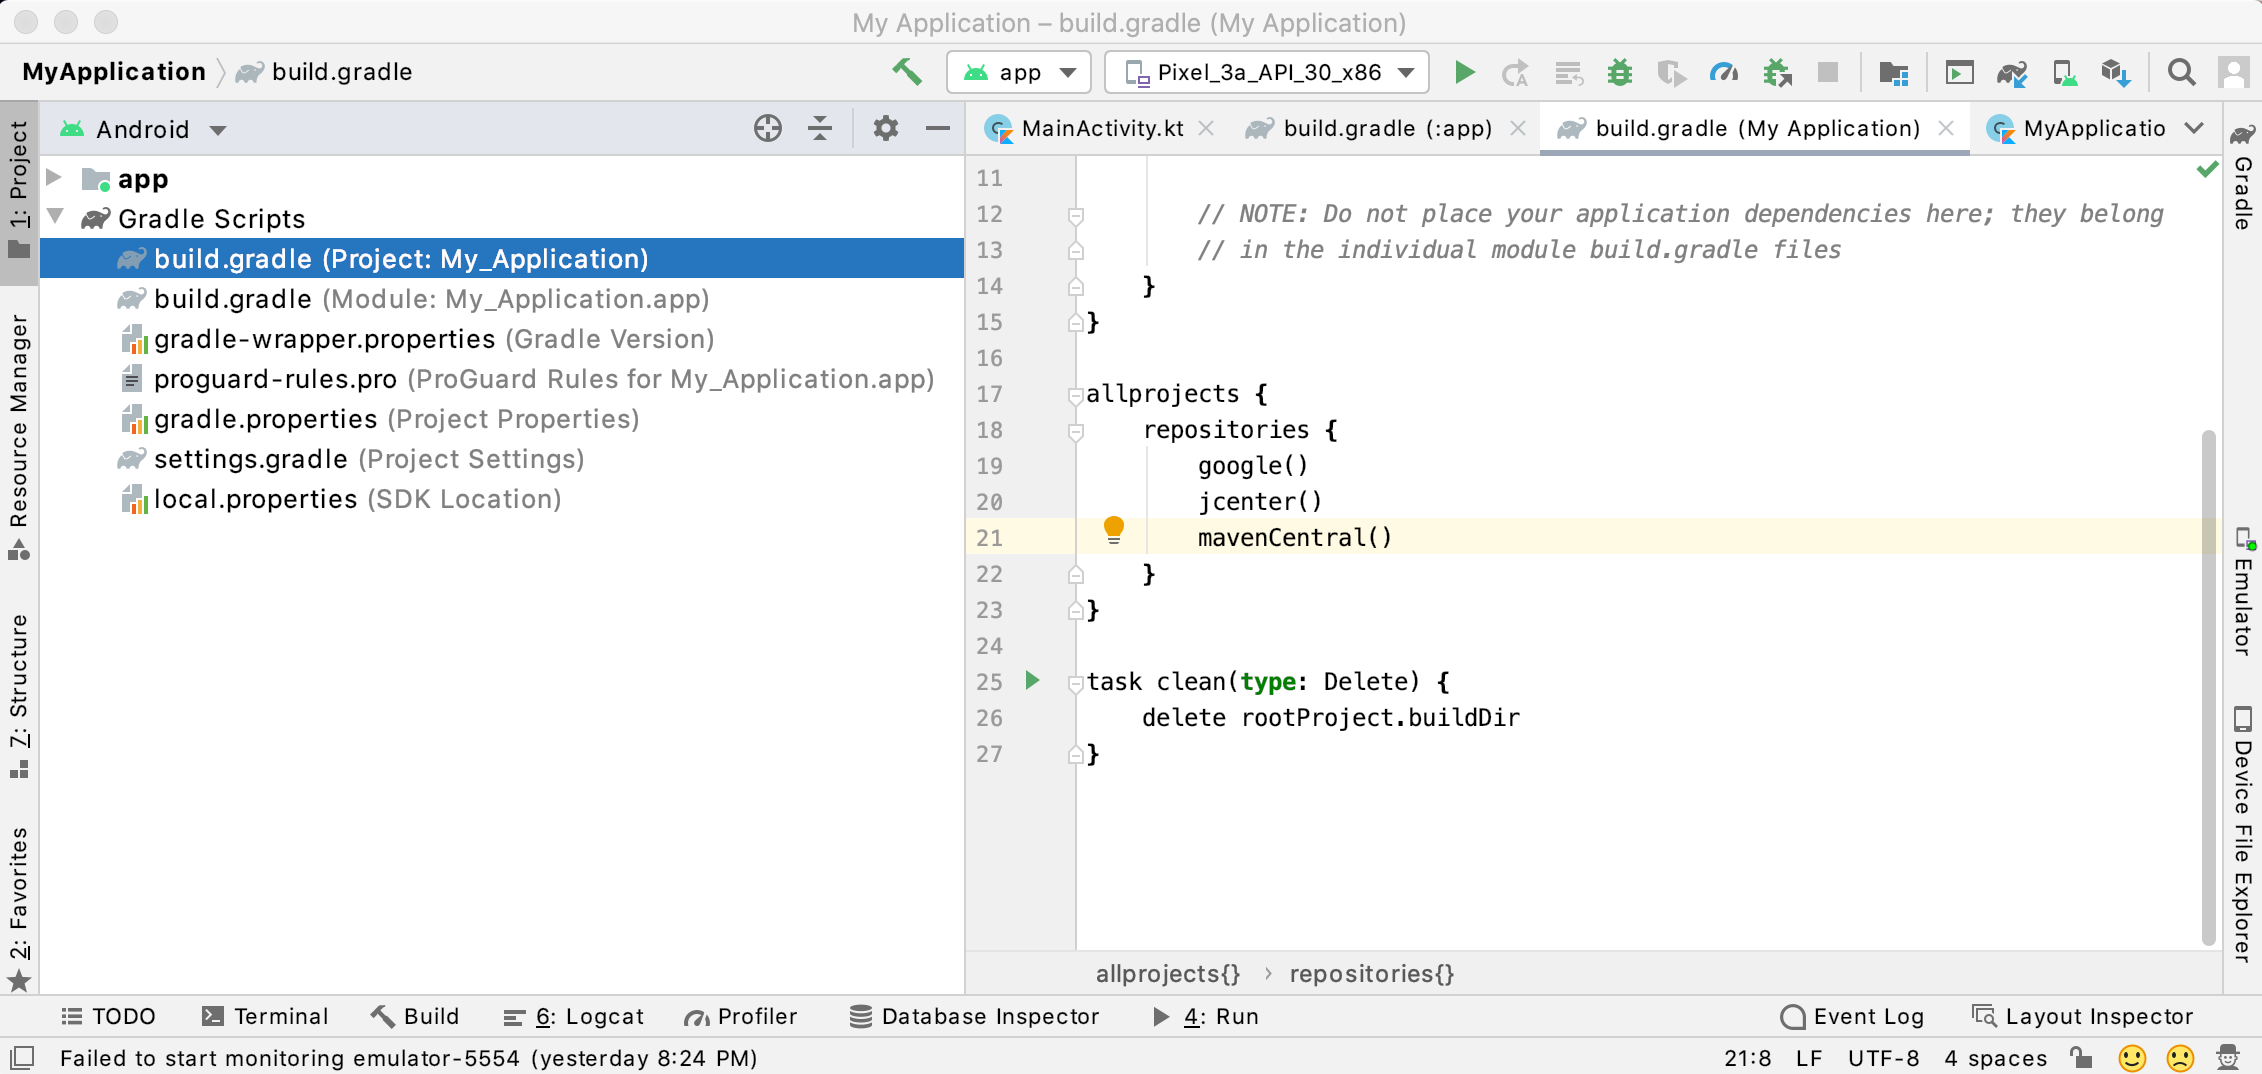 Add Maven Central to your Project-level Gradle file.